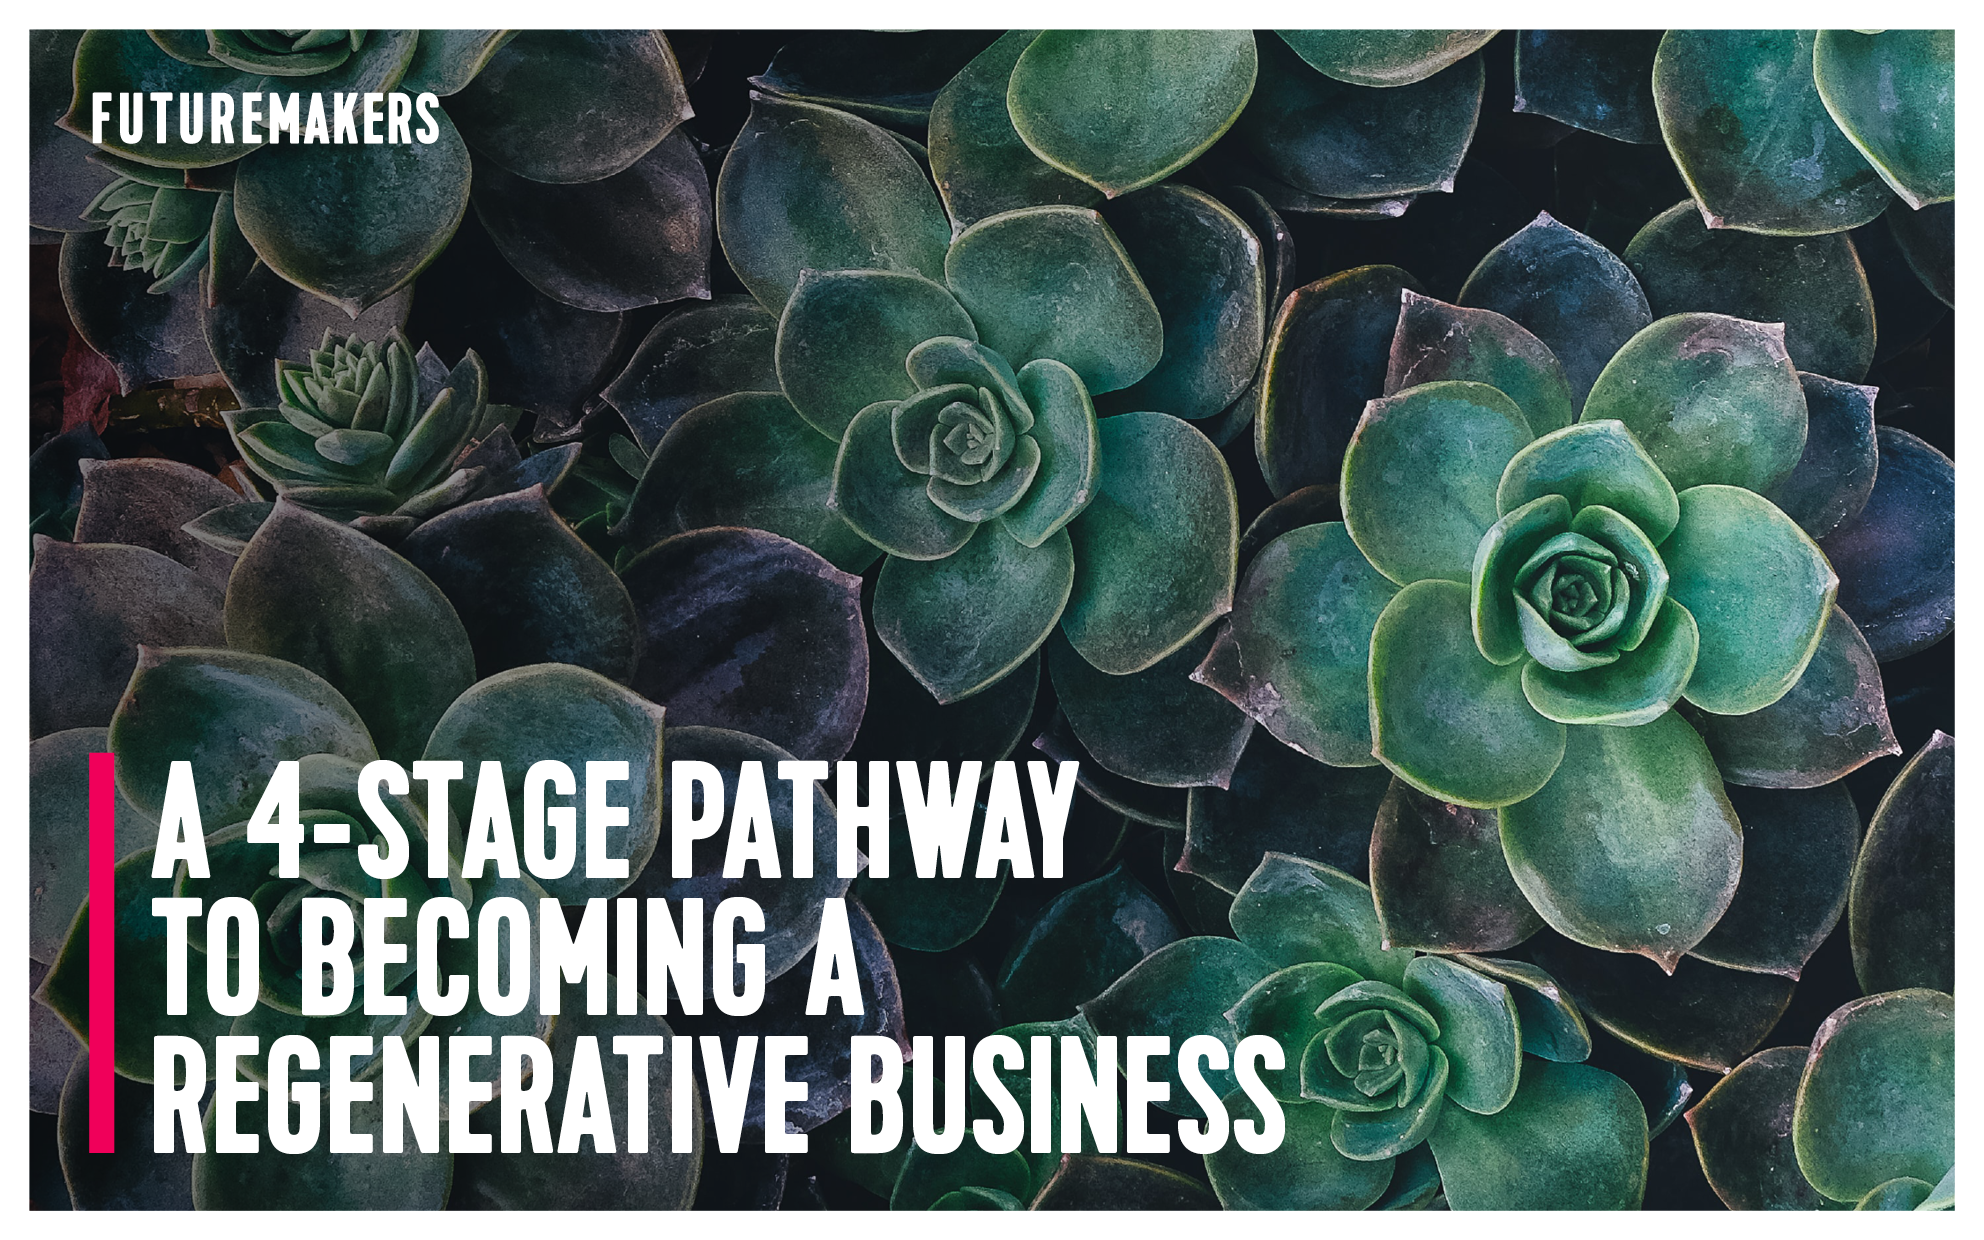 futuremakers-a-4-stage-pathway-to-becoming-a-regenerative-business